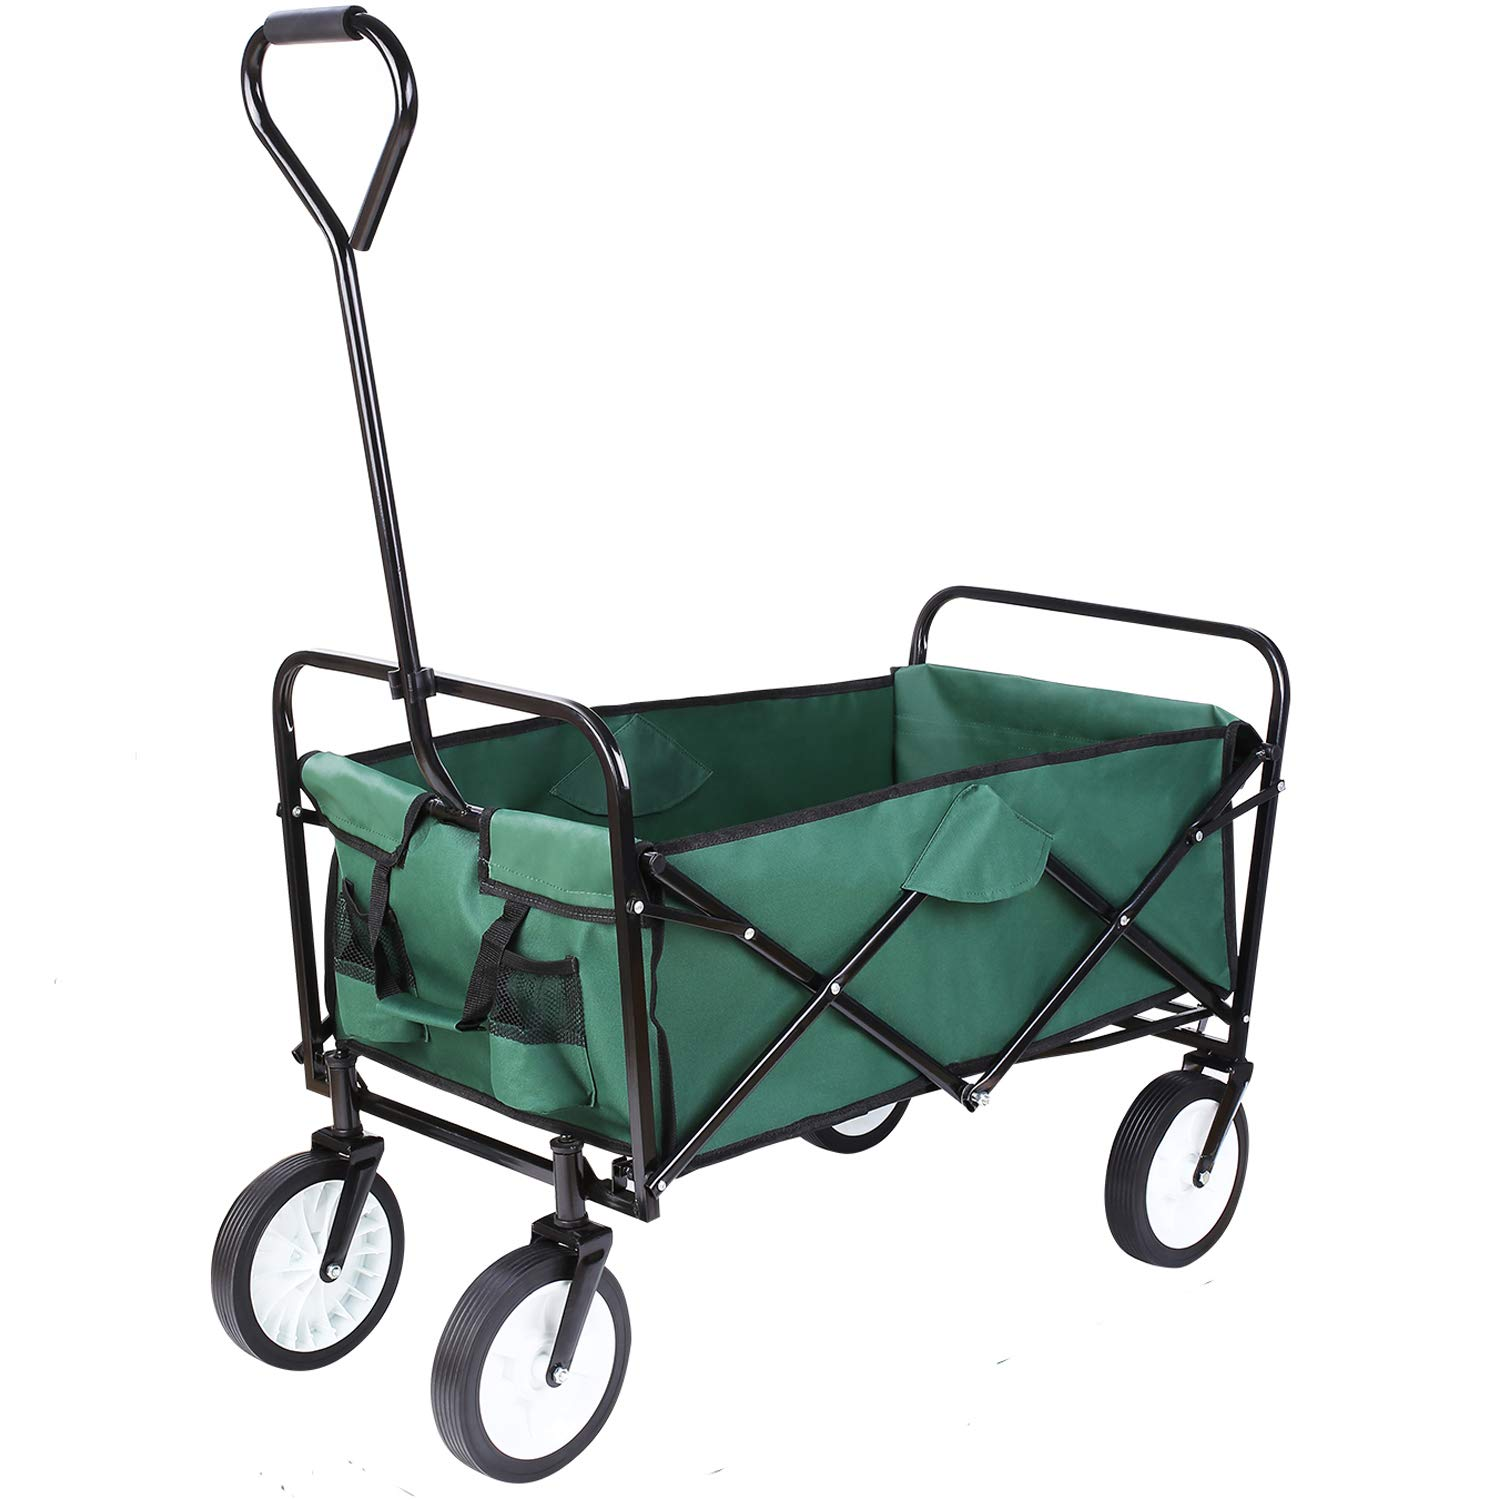 FIXKIT Collapsible Outdoor Utility Wagon, Folding Sturdy Garden Shopping Cart for Beach with All-Terrain Wheels, Dark Green by FIXKIT